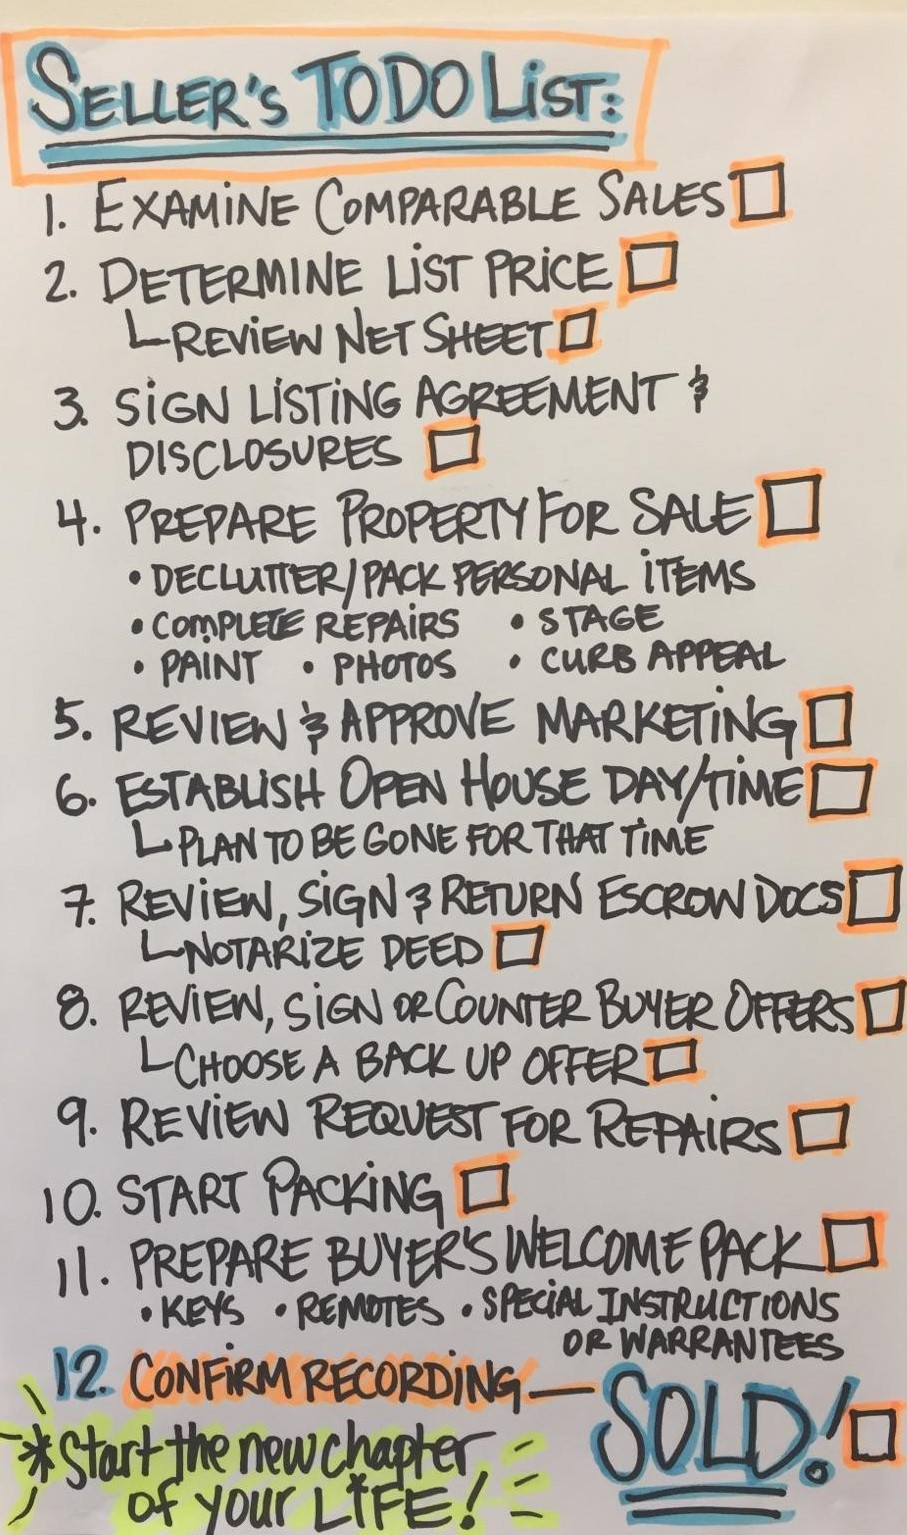 Sellers To Do List.jpeg